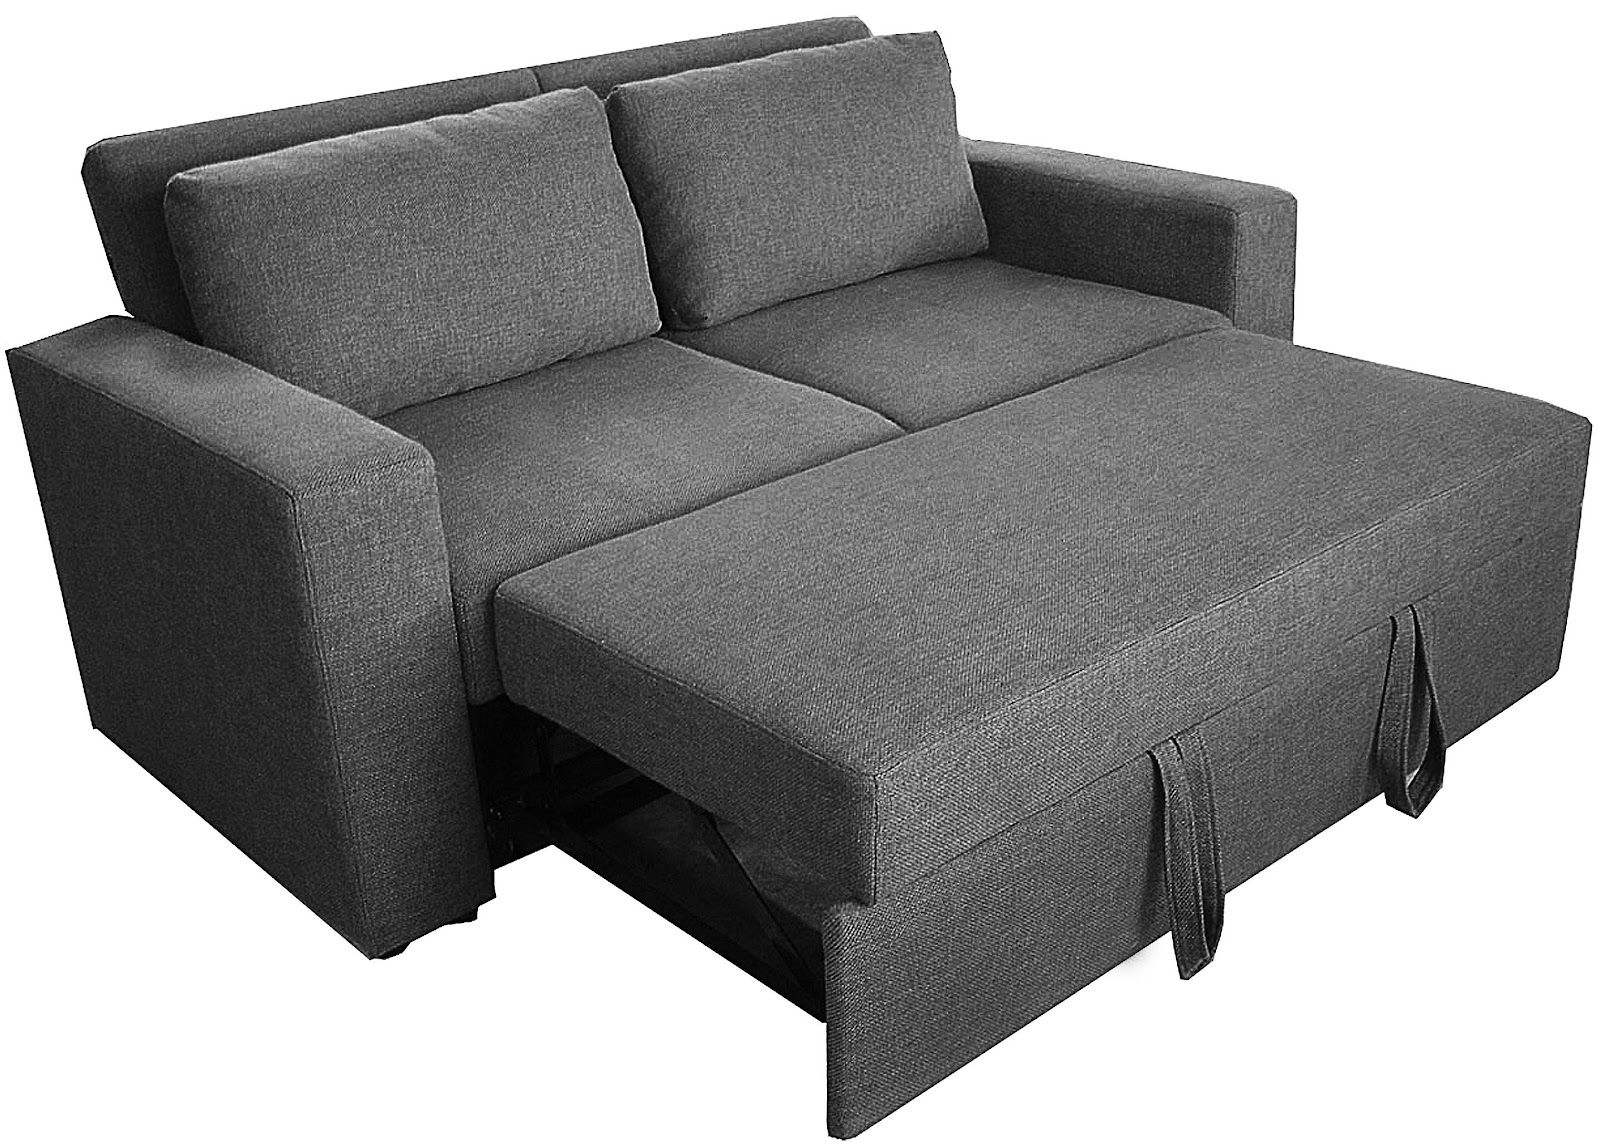 Small Sofa Ikea 51key2swi (1600×1145)